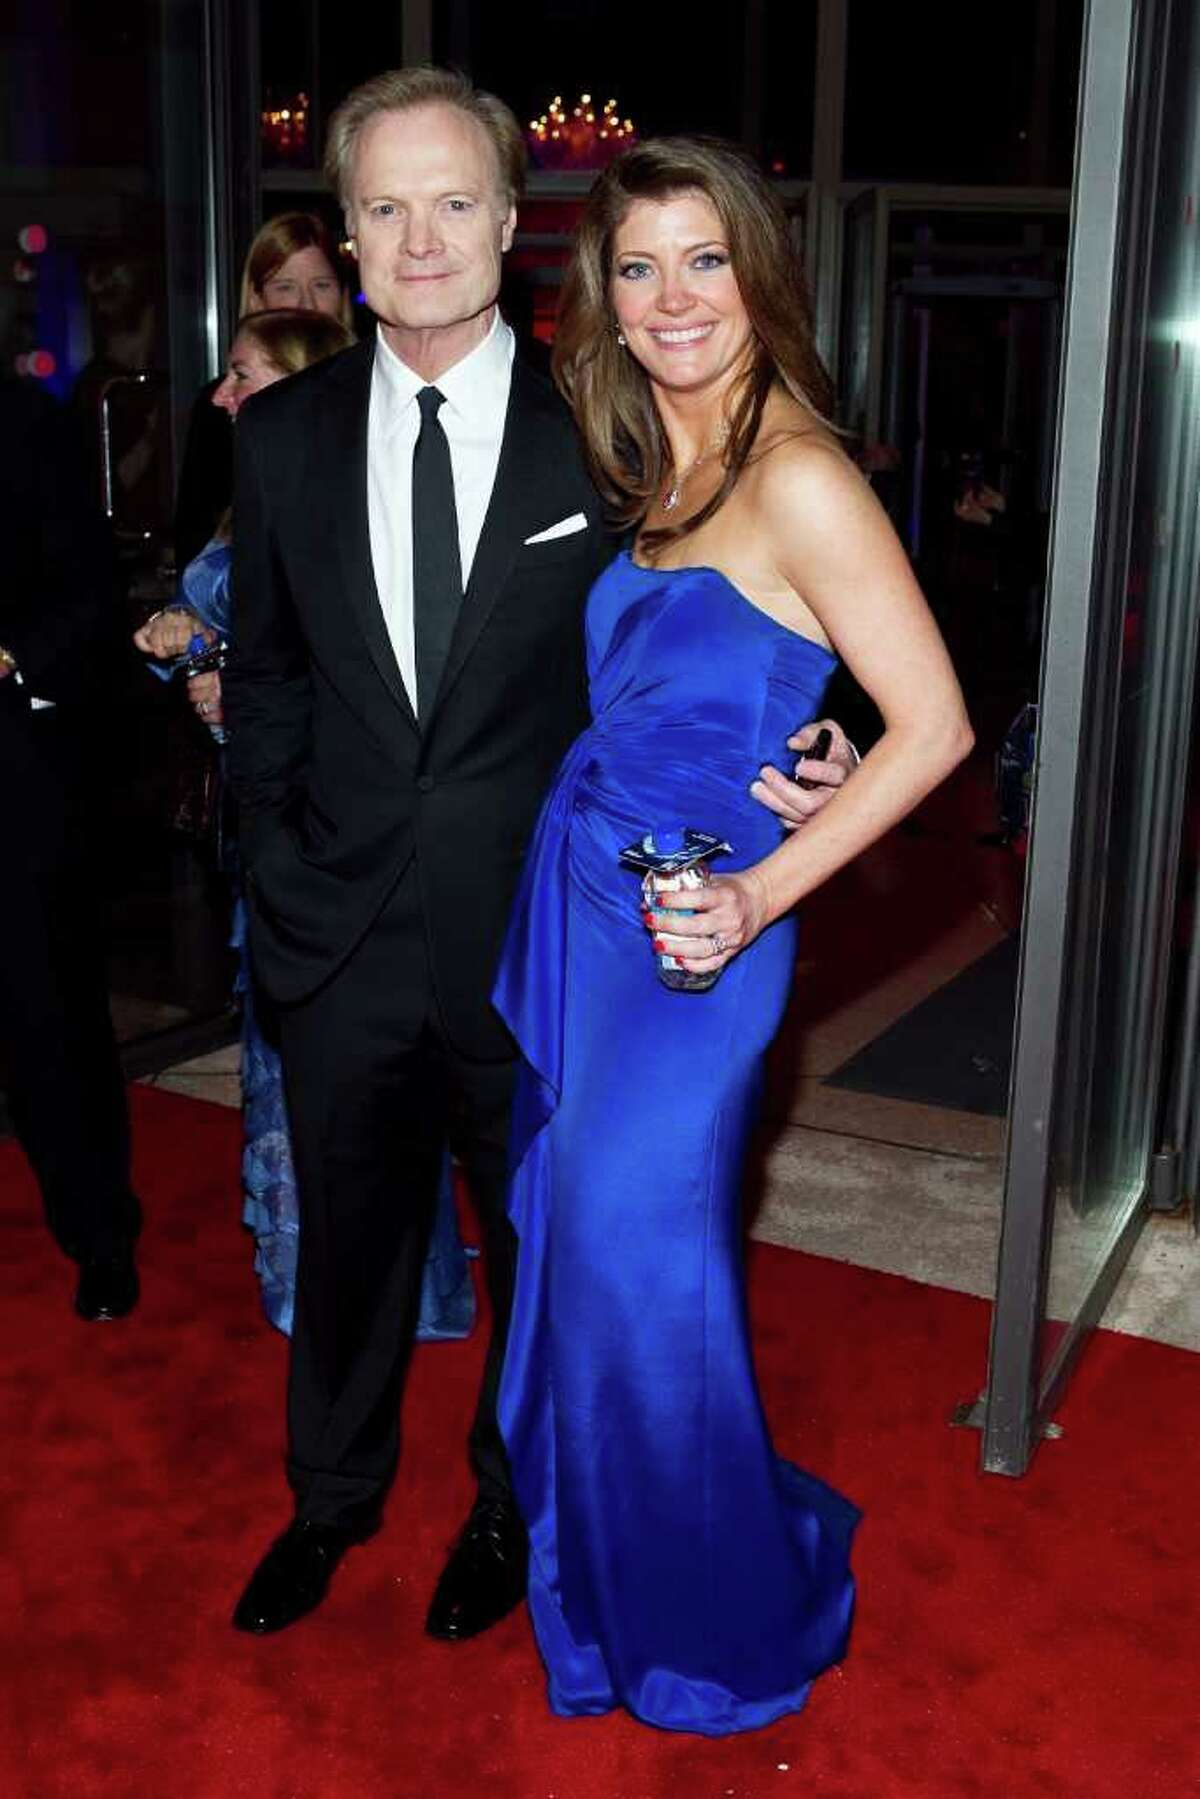 WASHINGTON, DC - APRIL 30: MSNBC's Lawrence O'Donnell and and Norah O'Donnell attned the MSNBC Correspondents' after party with FIJI Water at Embassy of Italy on April 30, 2011 in Washington, DC. (Photo by Paul Morigi/Getty Images for The New Yorker) *** Local Caption *** Norah O'Donnell;Lawrence O'Donnell;